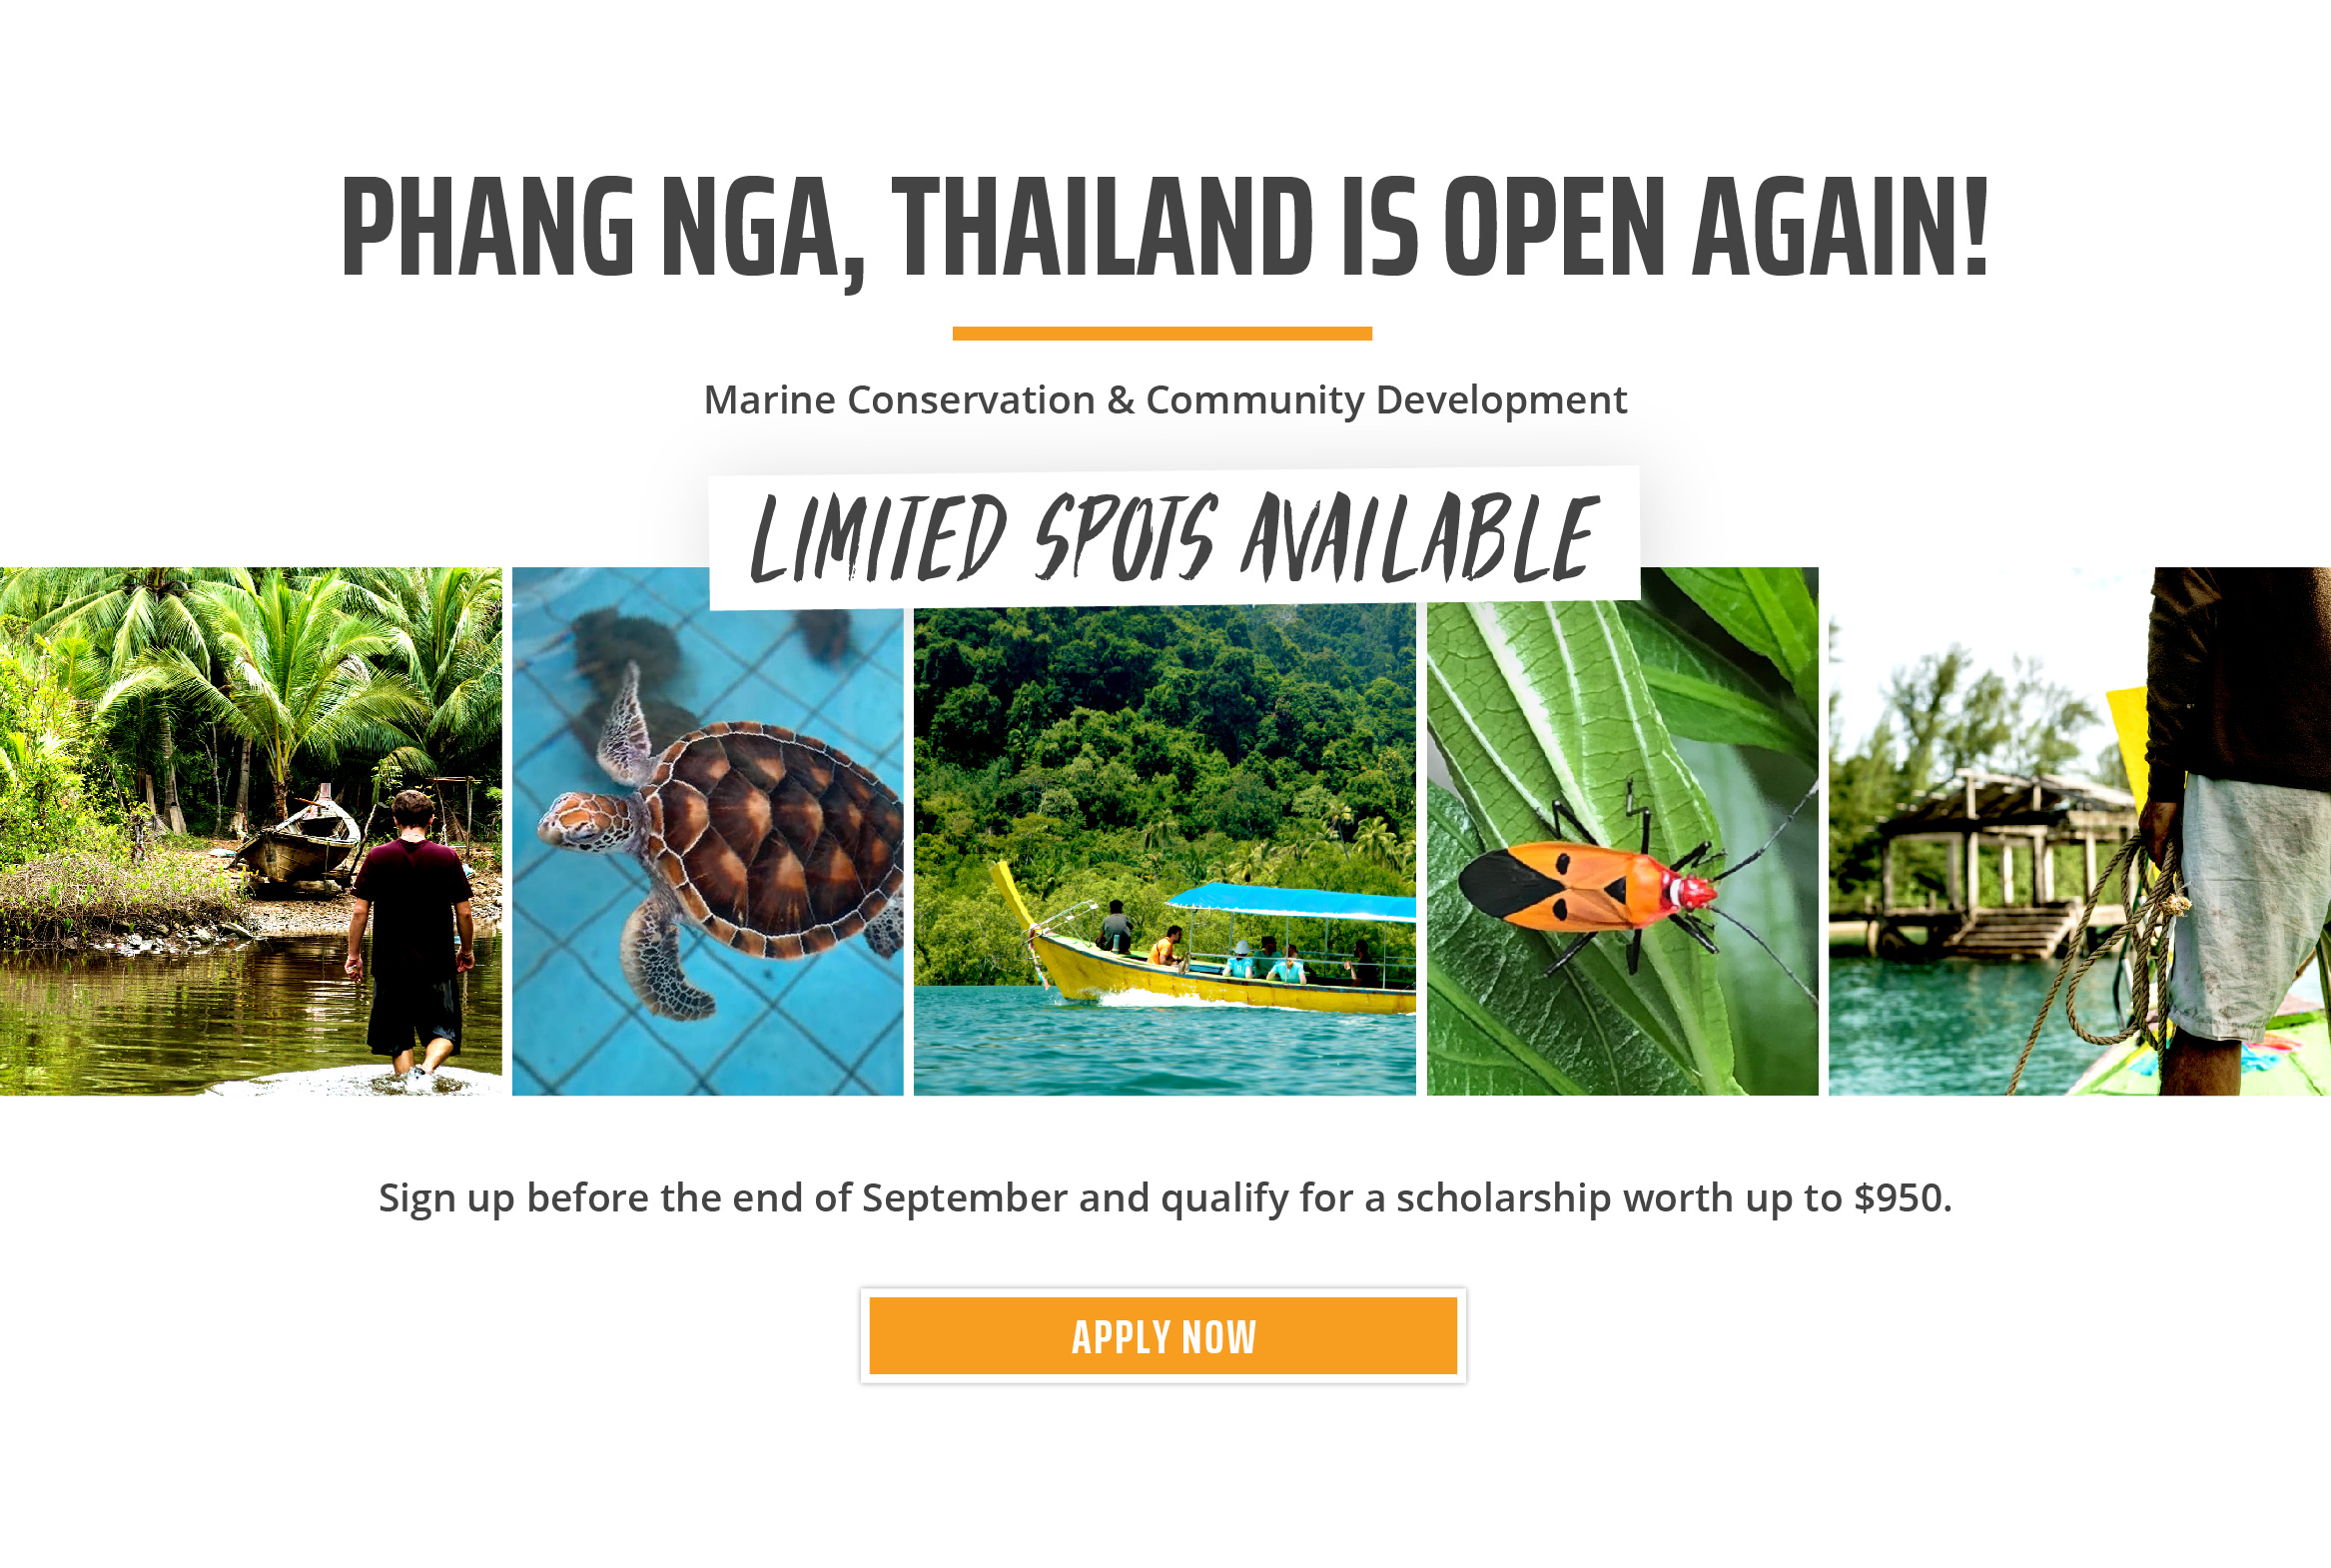 AUS/CAN Thailand Reopening